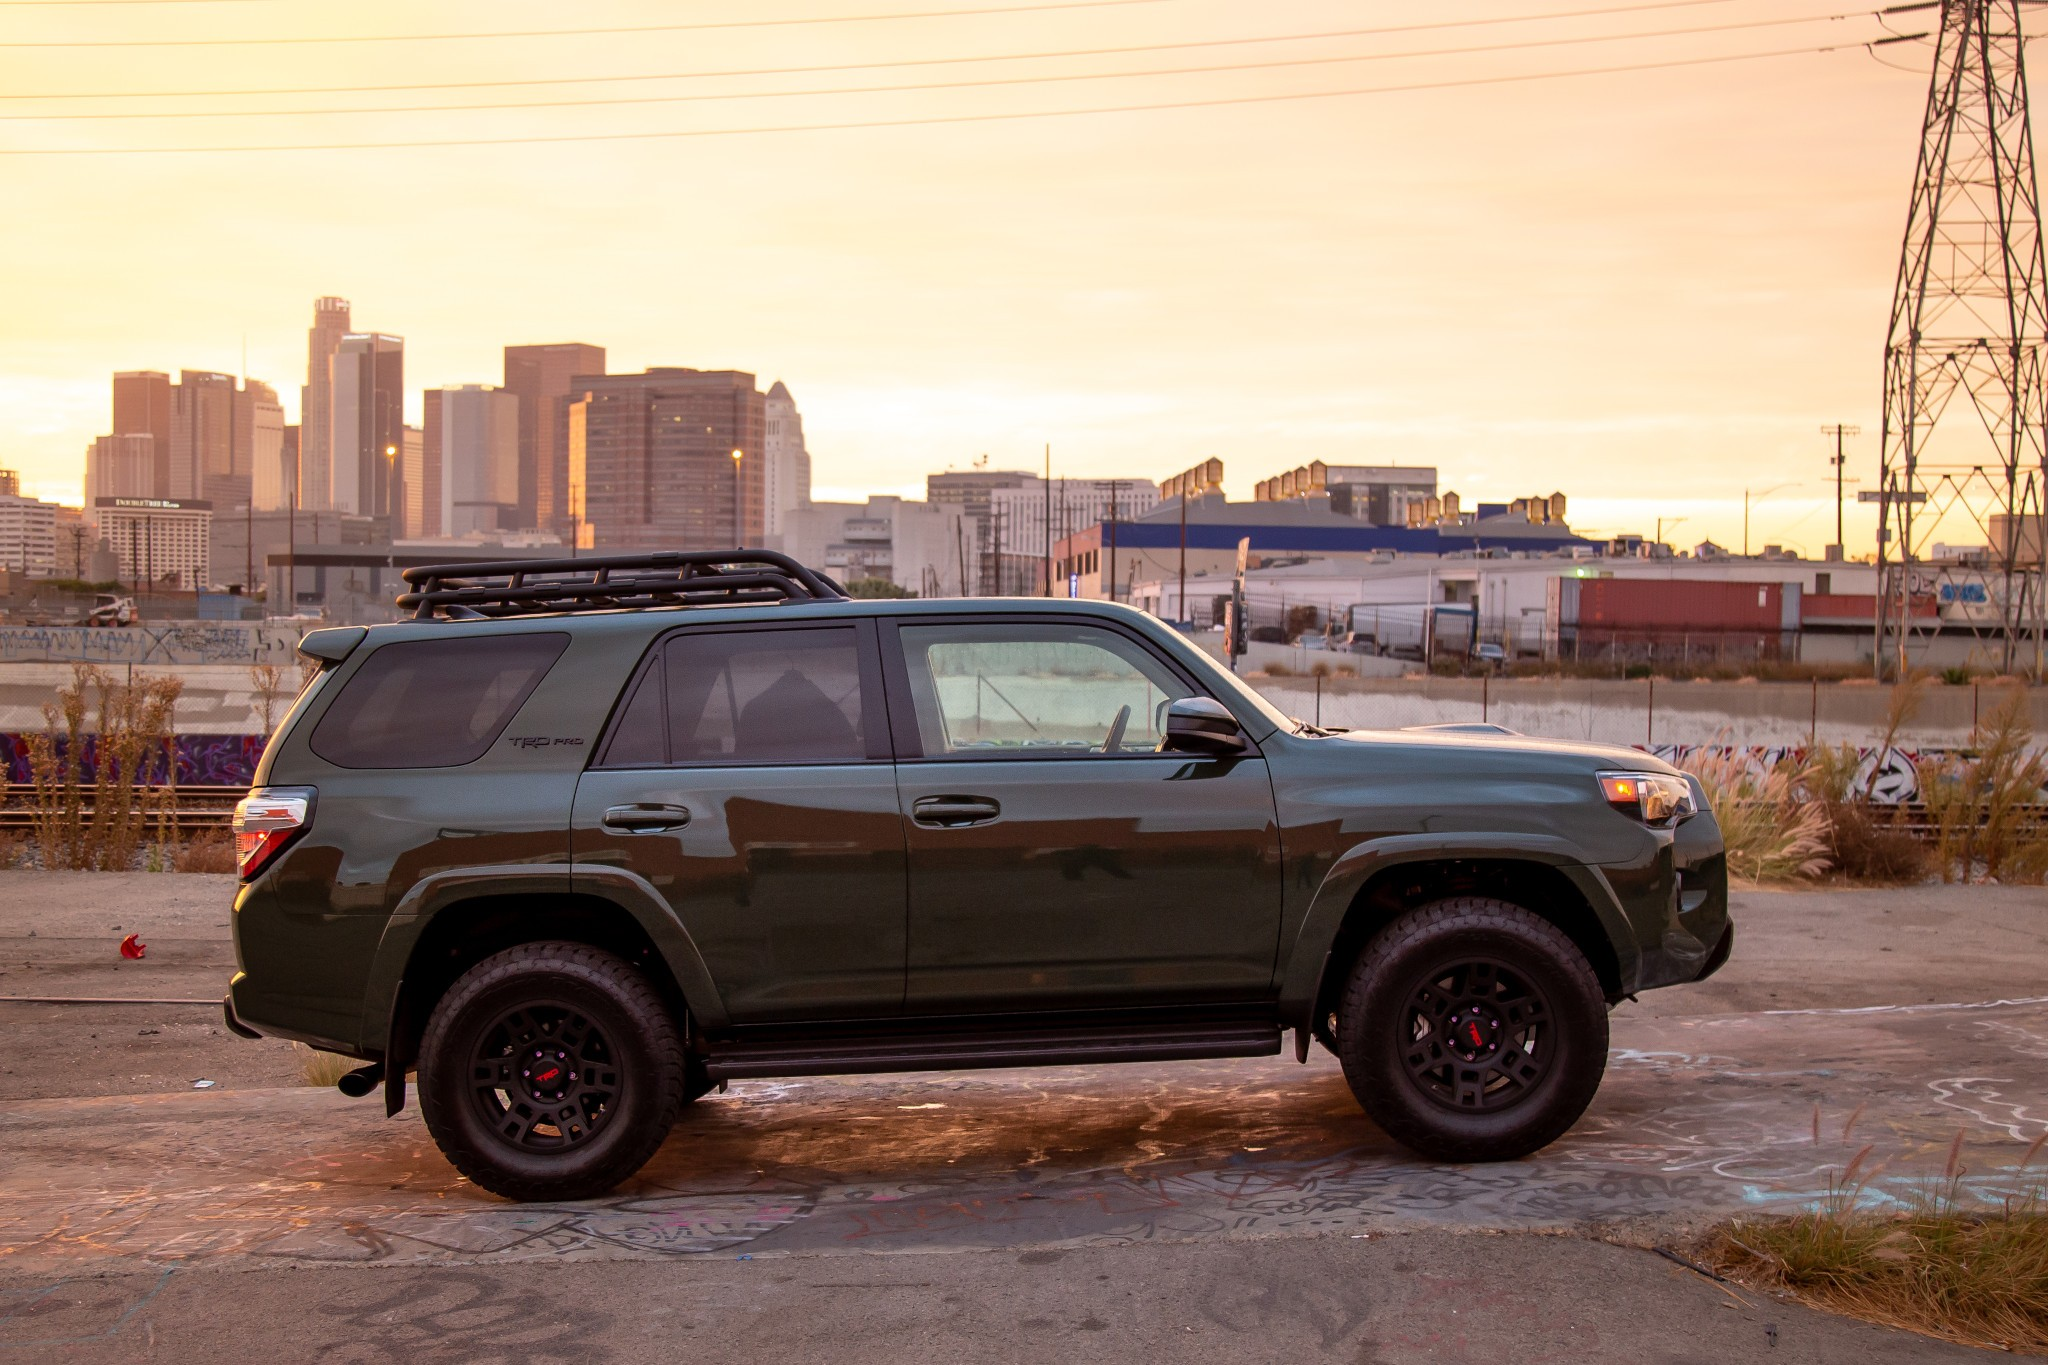 2020 Toyota 4Runner Review: At Home Where the Sidewalk Ends | News from Cars.com